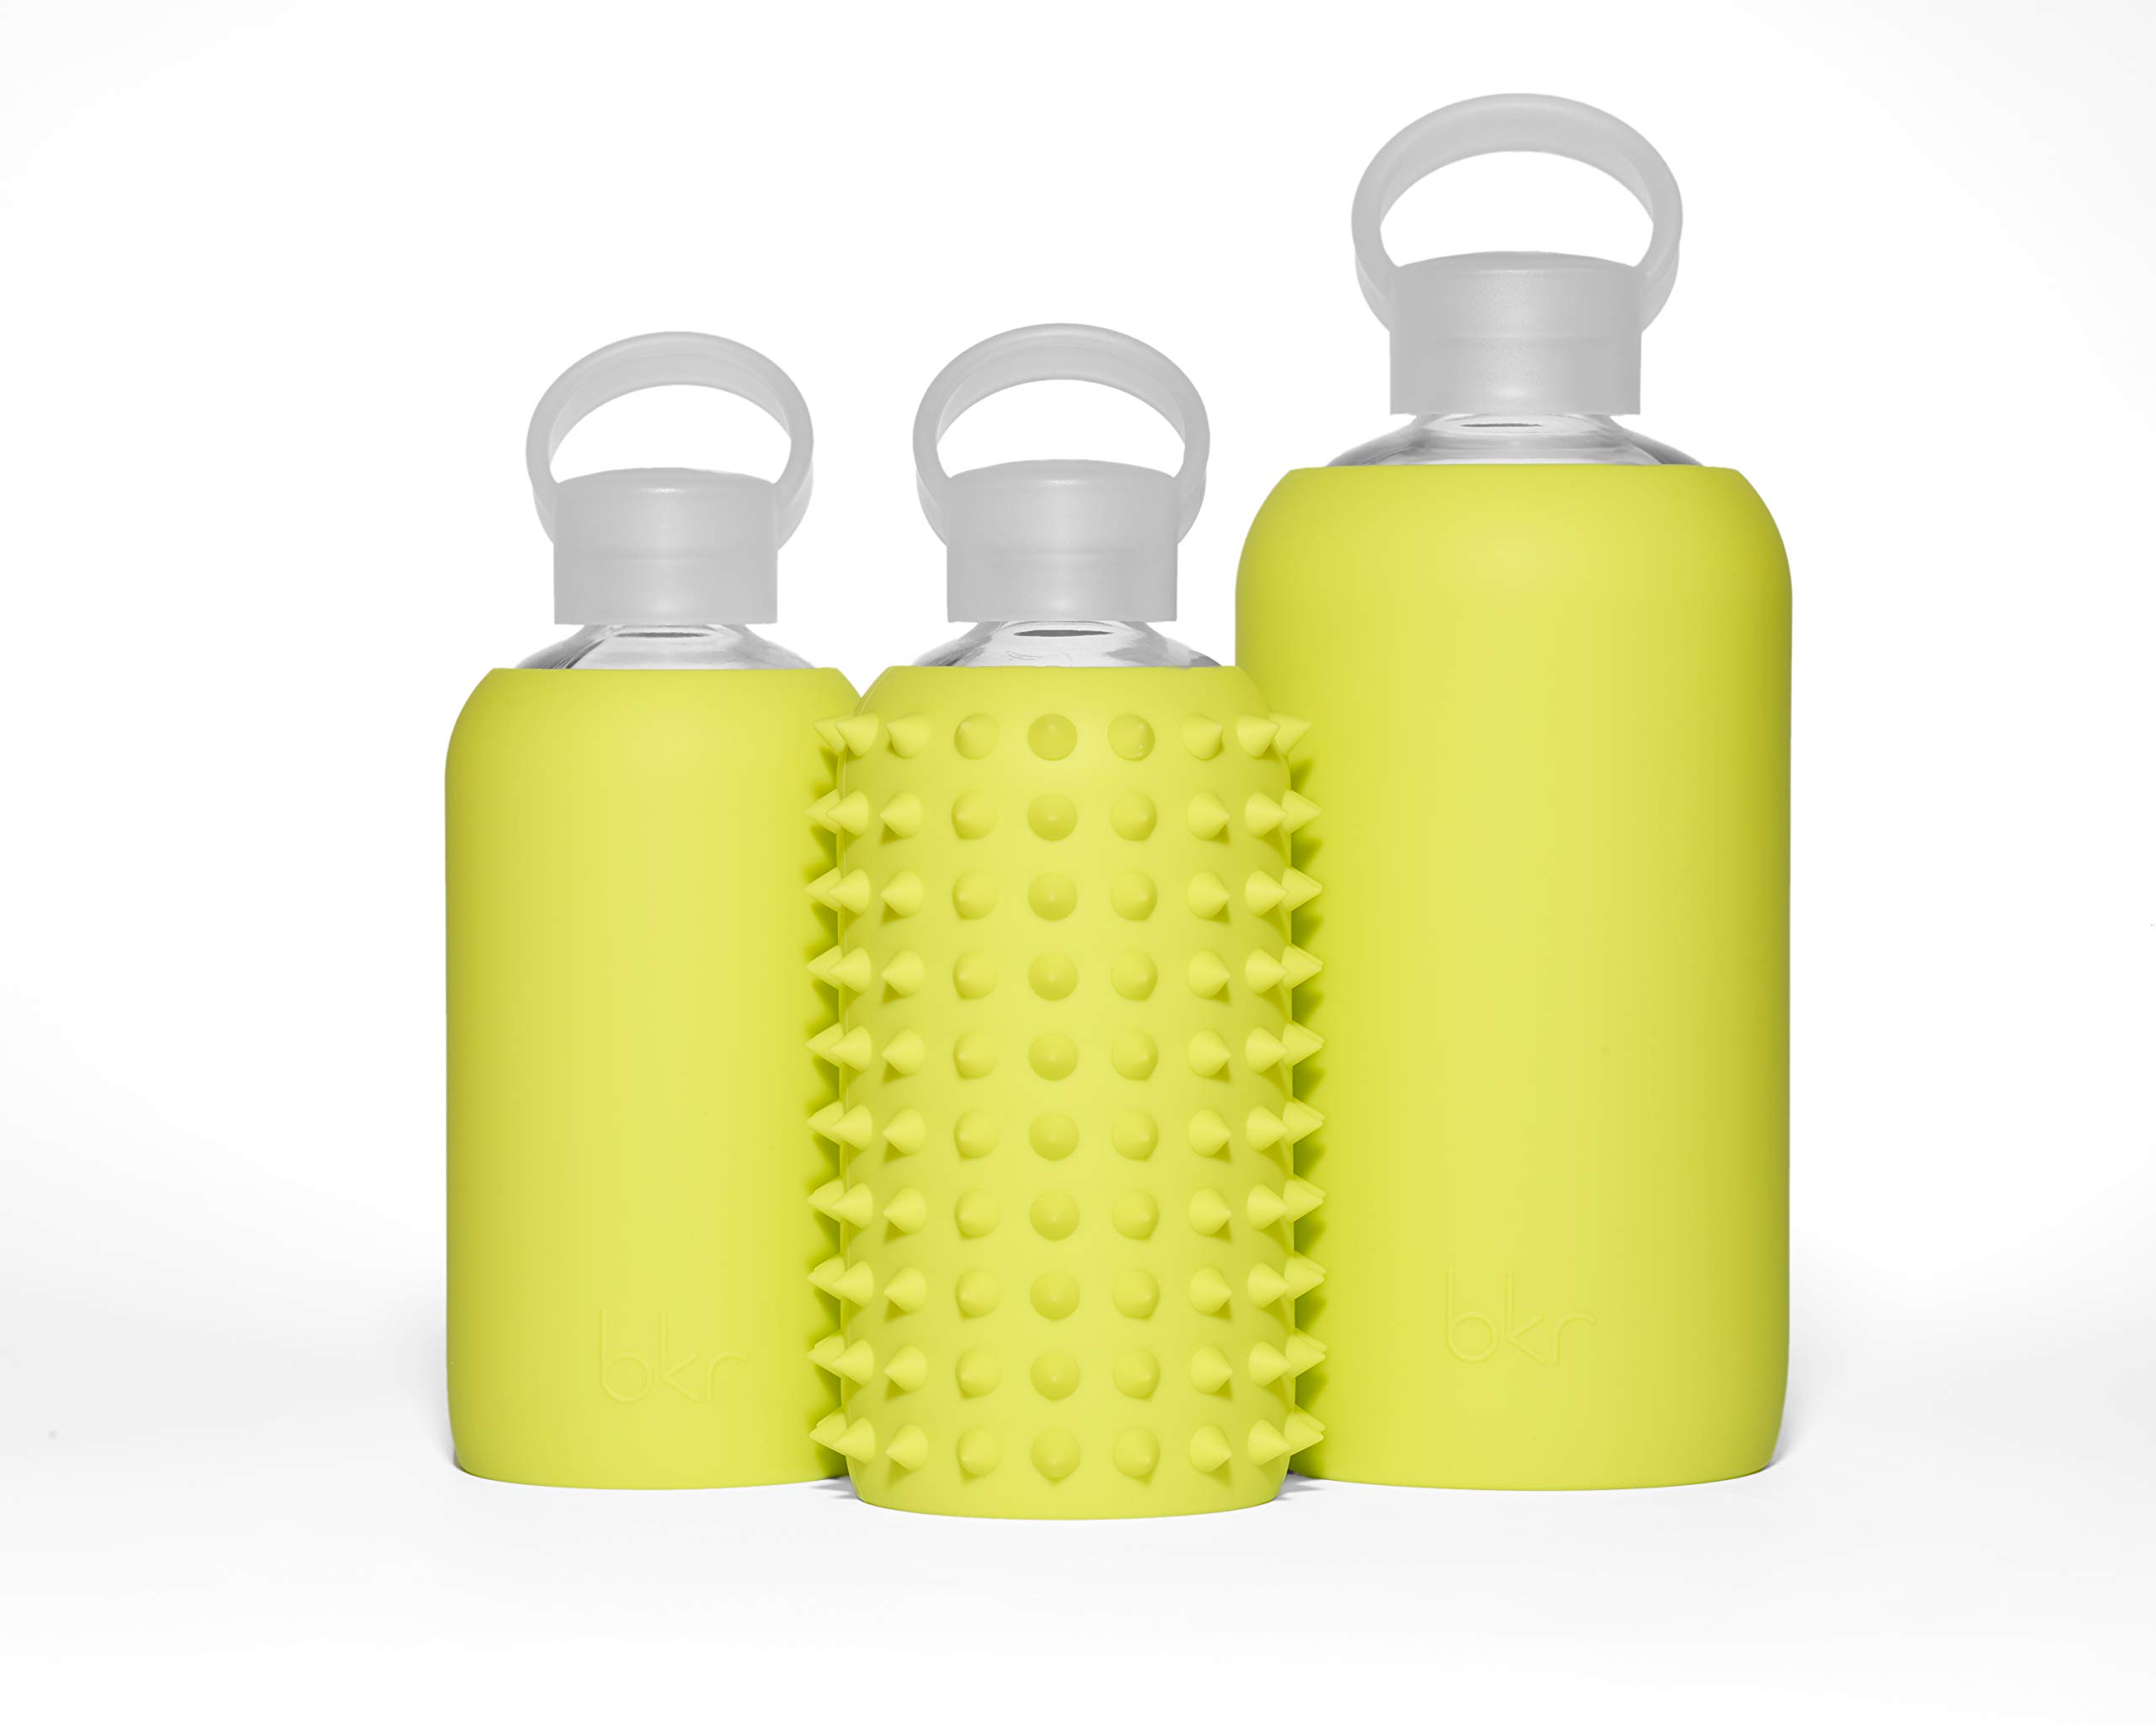 bkr Gigi Glass Water Bottle with Smooth Silicone Sleeve for Travel, Narrow Mouth, BPA-Free & Dishwasher Safe, Opaque Lime Yellow, 1 Count by bkr (Image #7)